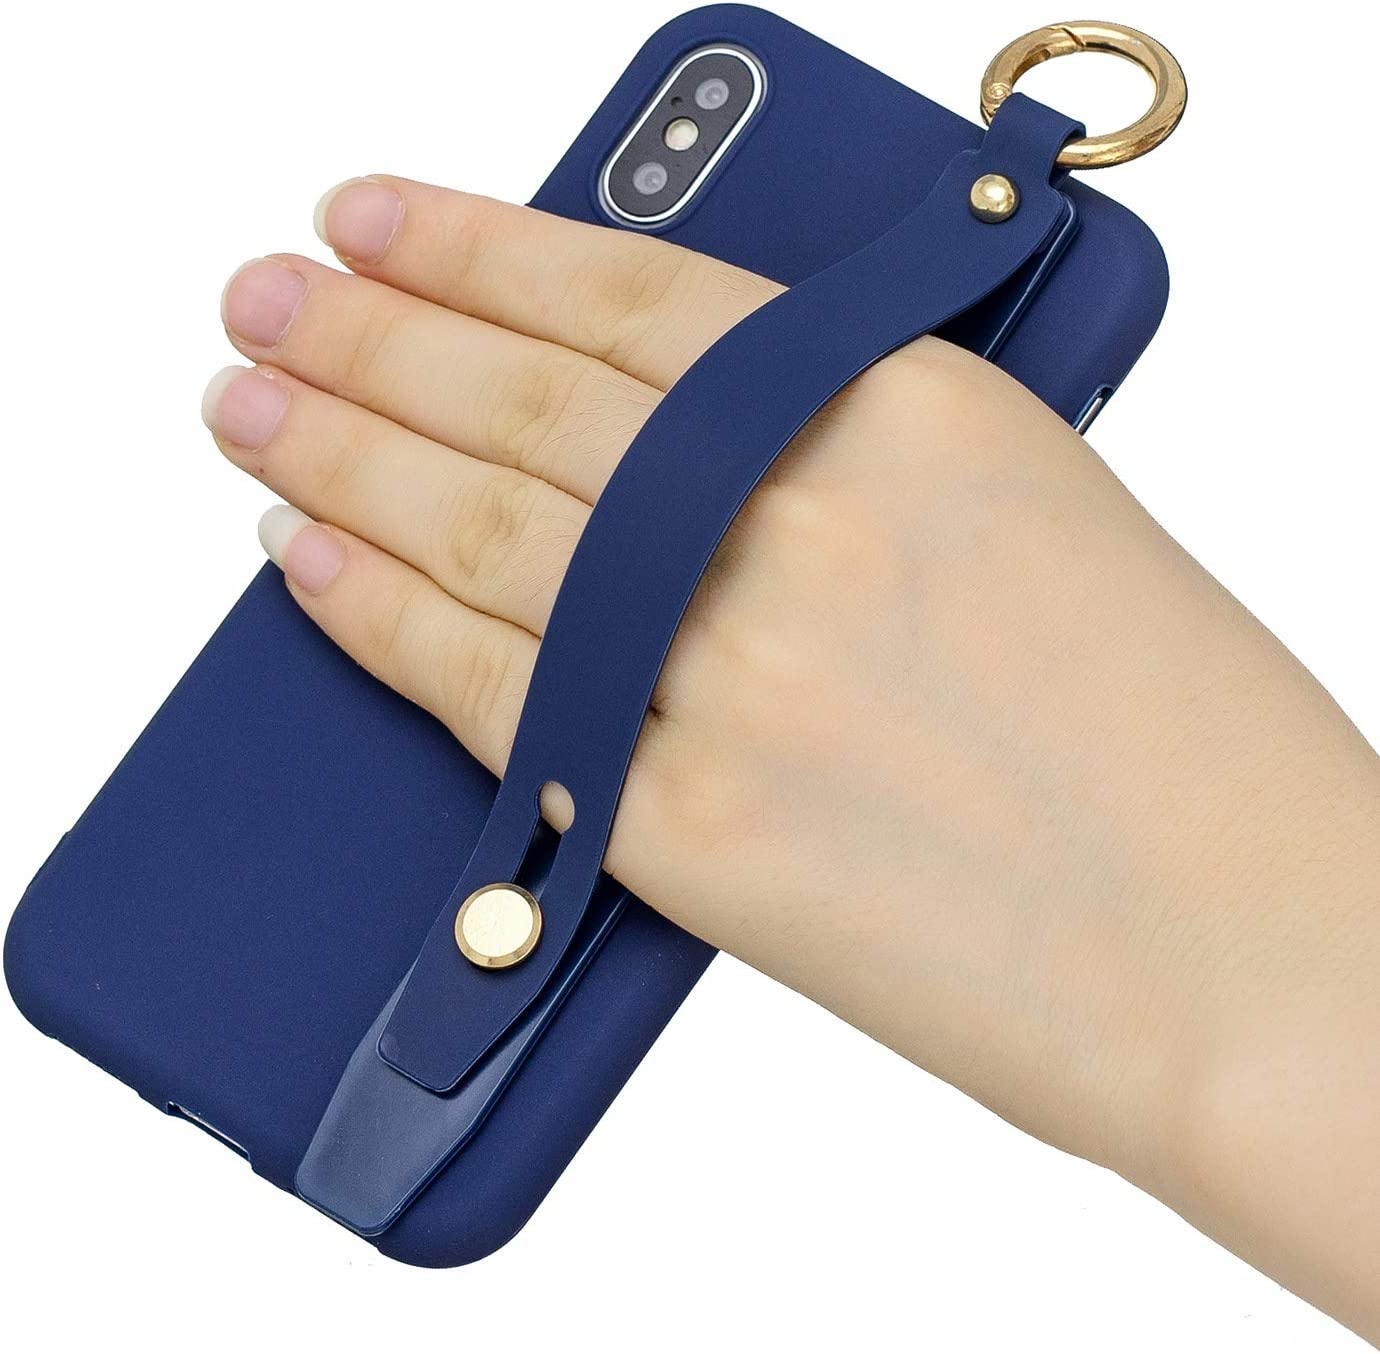 Dark Blue Amocase Soft Silicone Case with 2 in 1 Stylus for Samsung Galaxy S10 5G,Cute Sweet Candy Color Wrist Strap Stand Shockproof Anti-Scratch Flexible Case